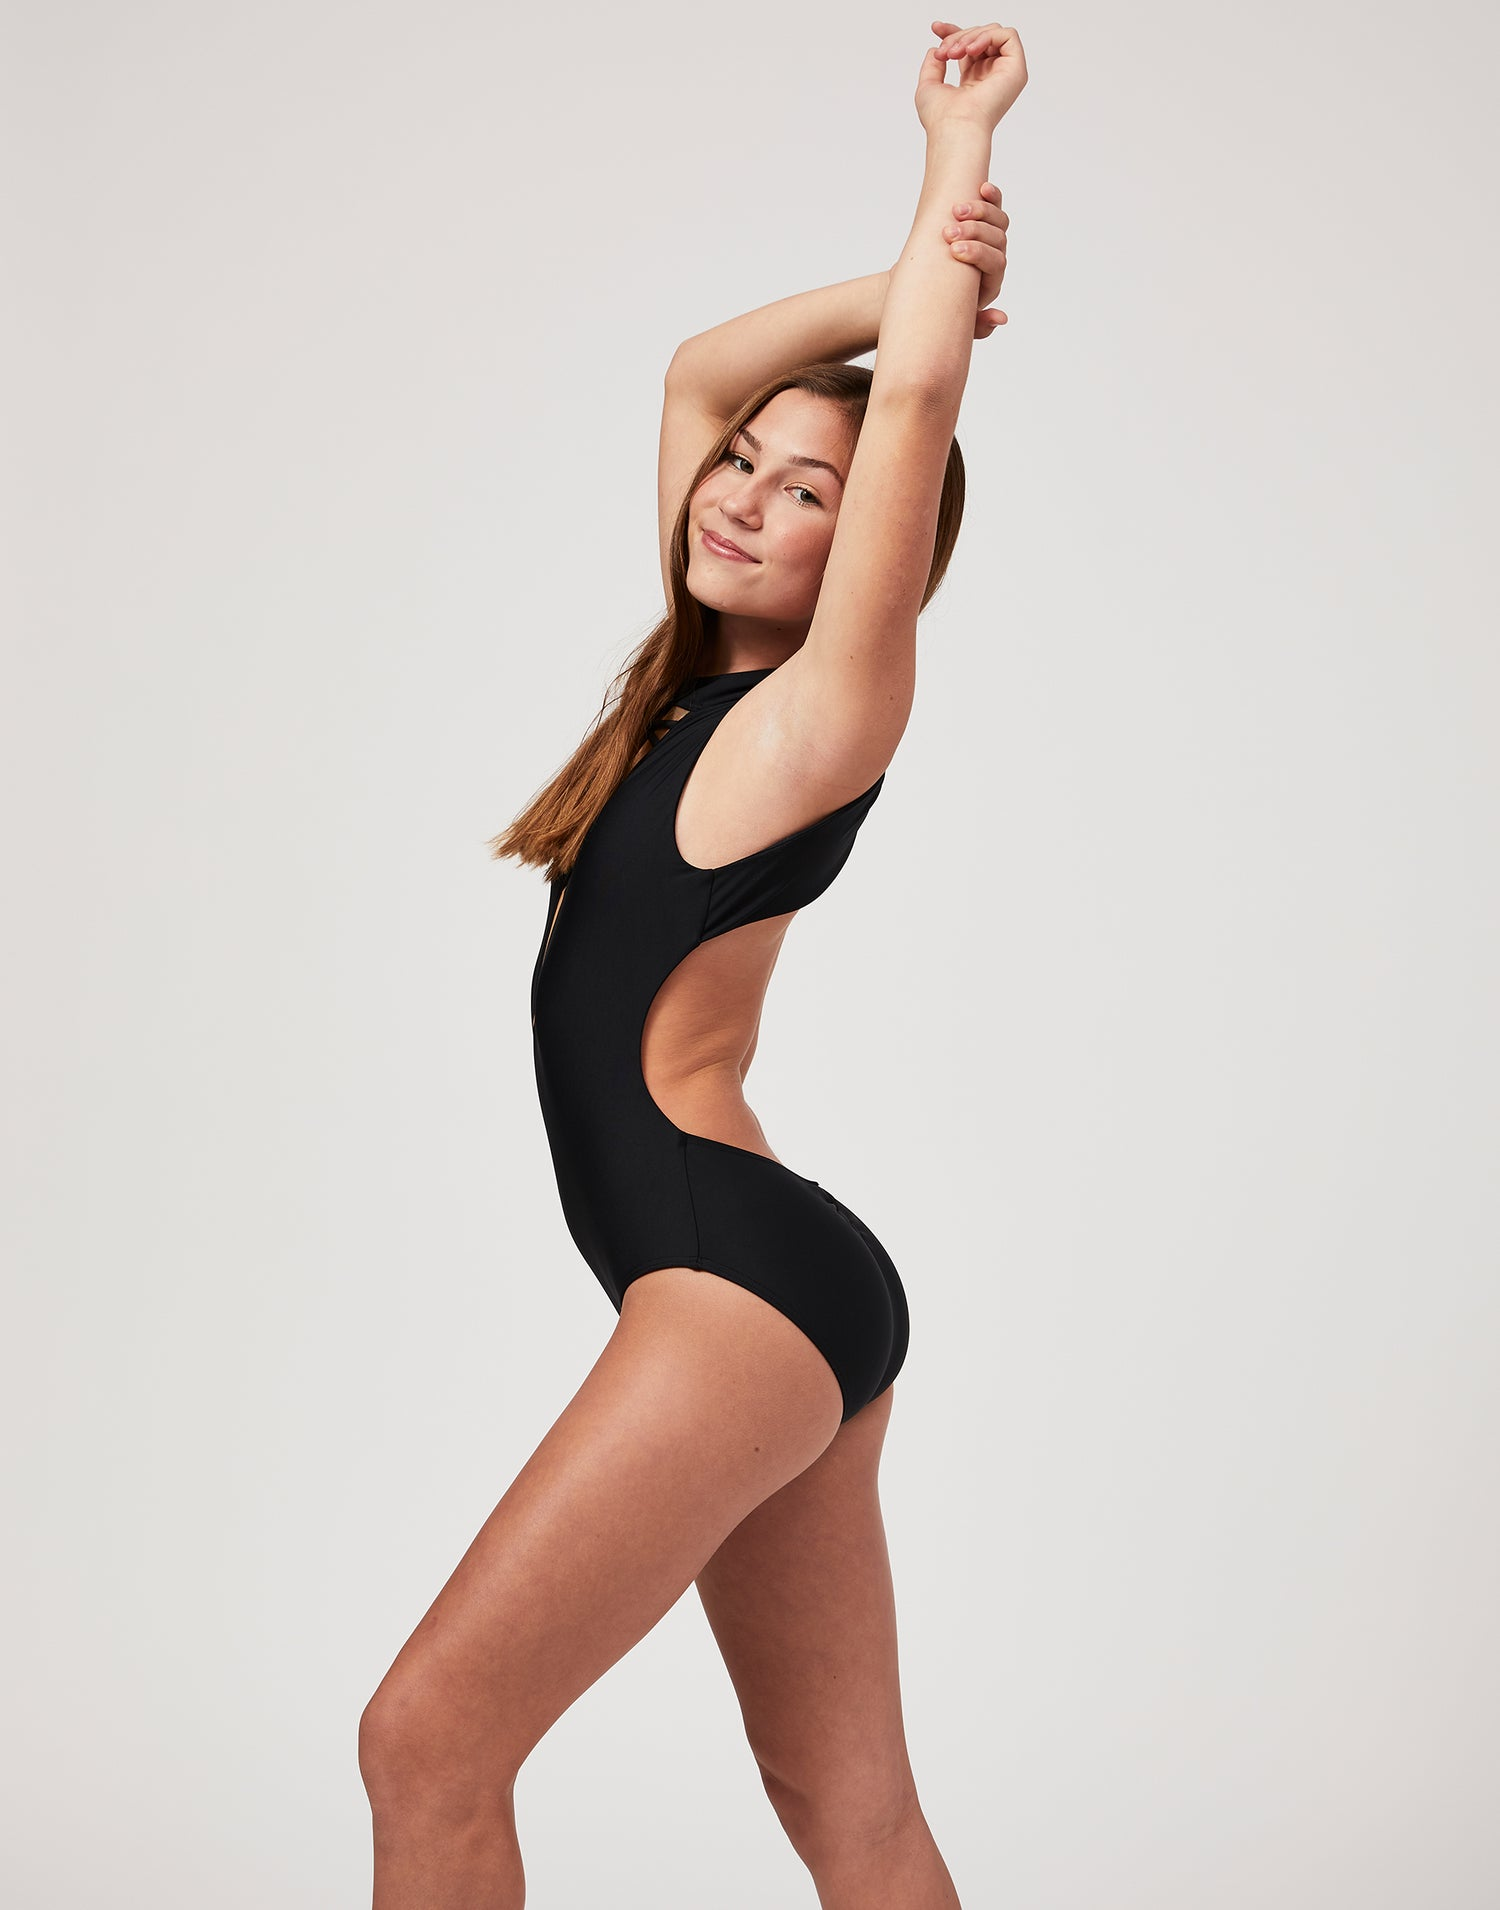 Child Taylor Leotard in Black - alternate side view